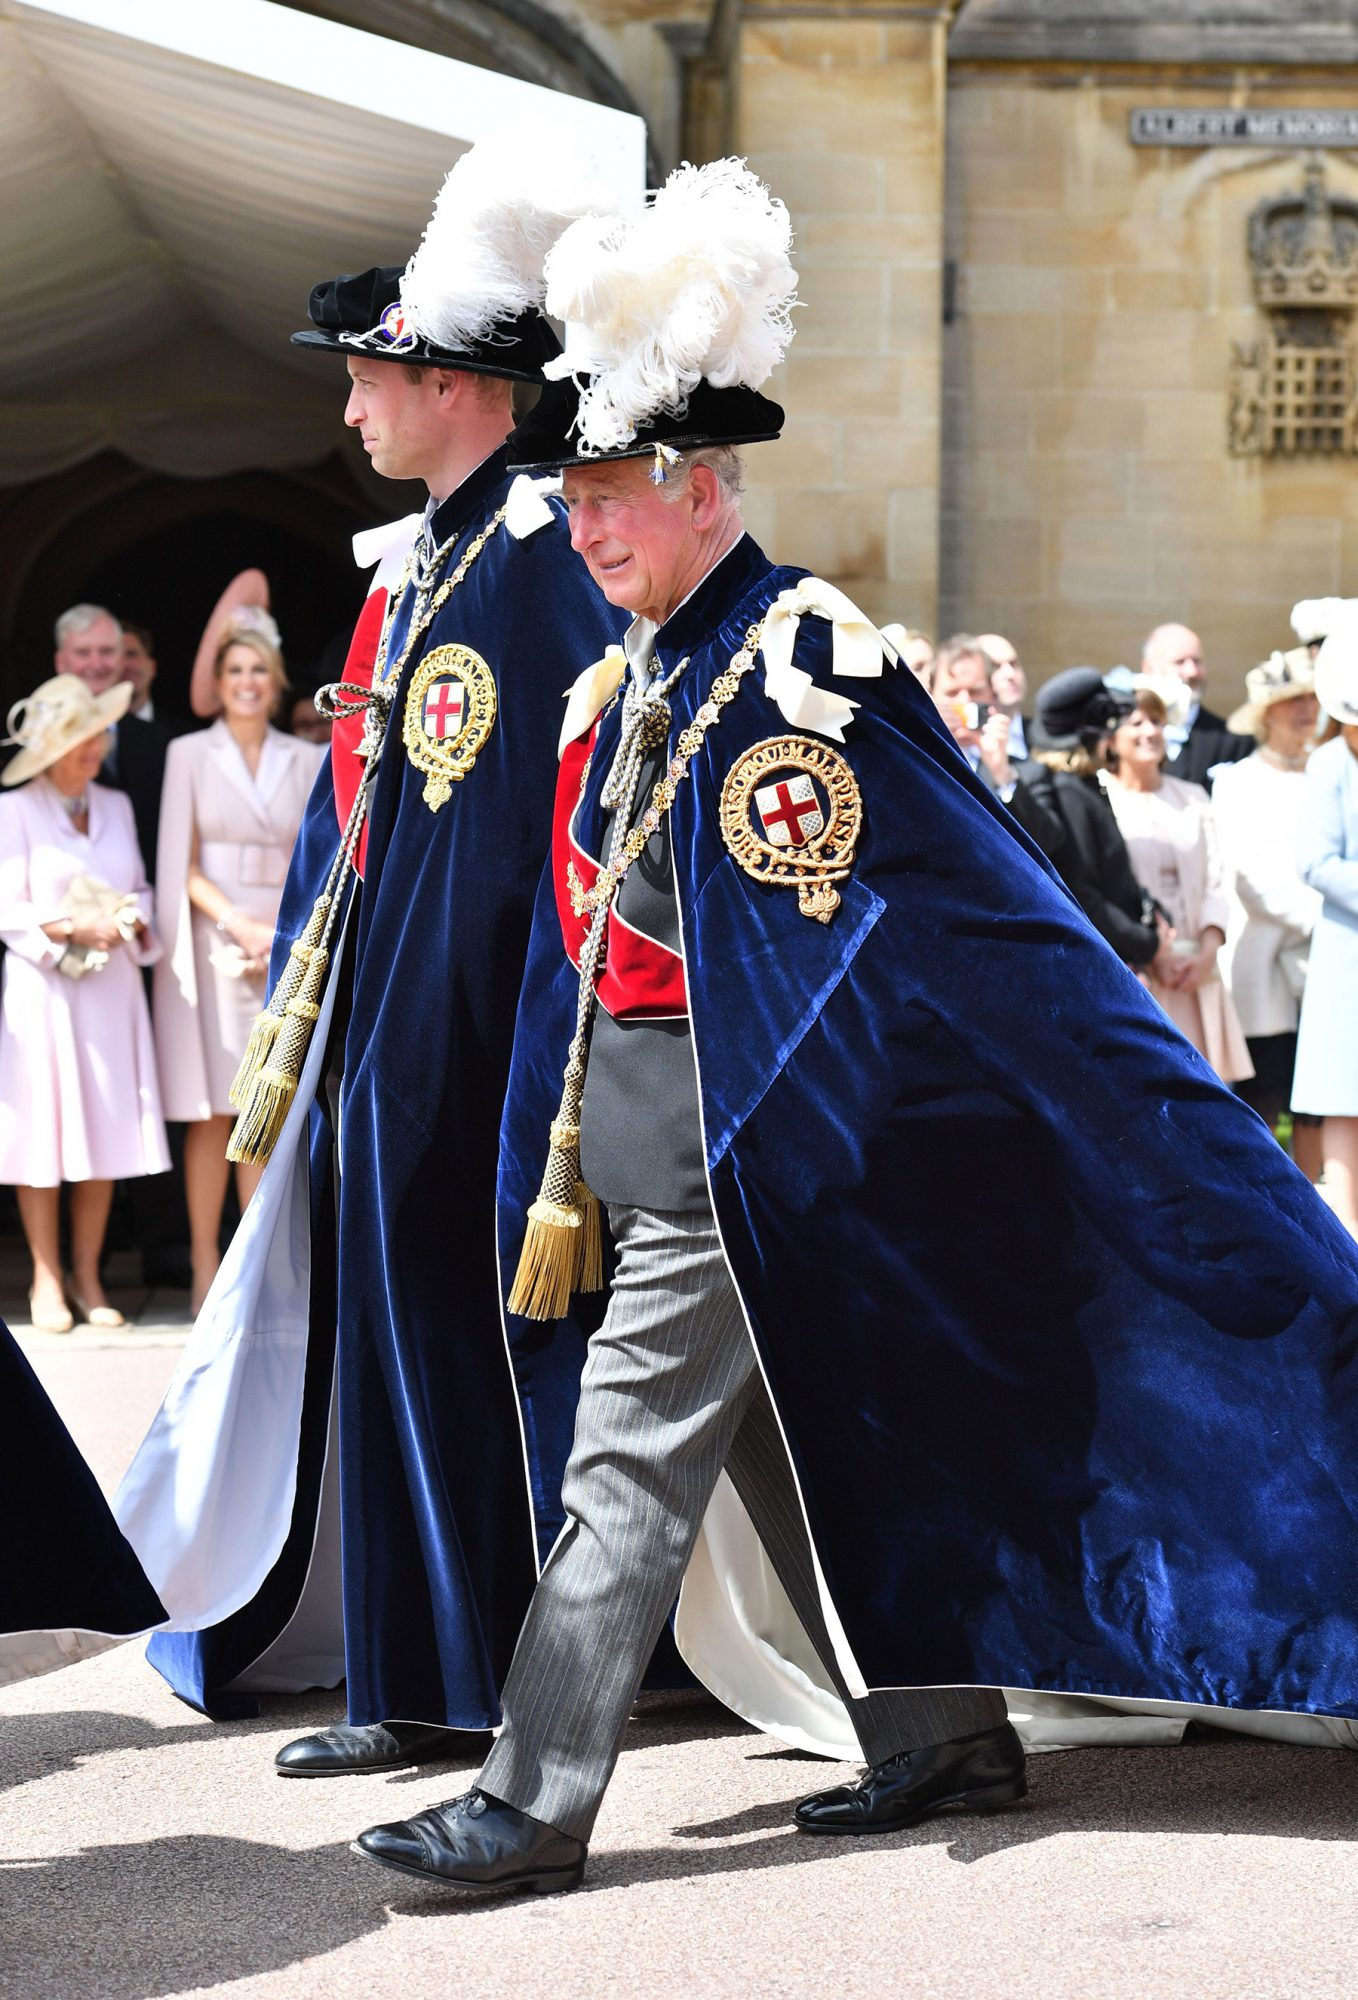 Prince William, Prince Charles Order of the Garter